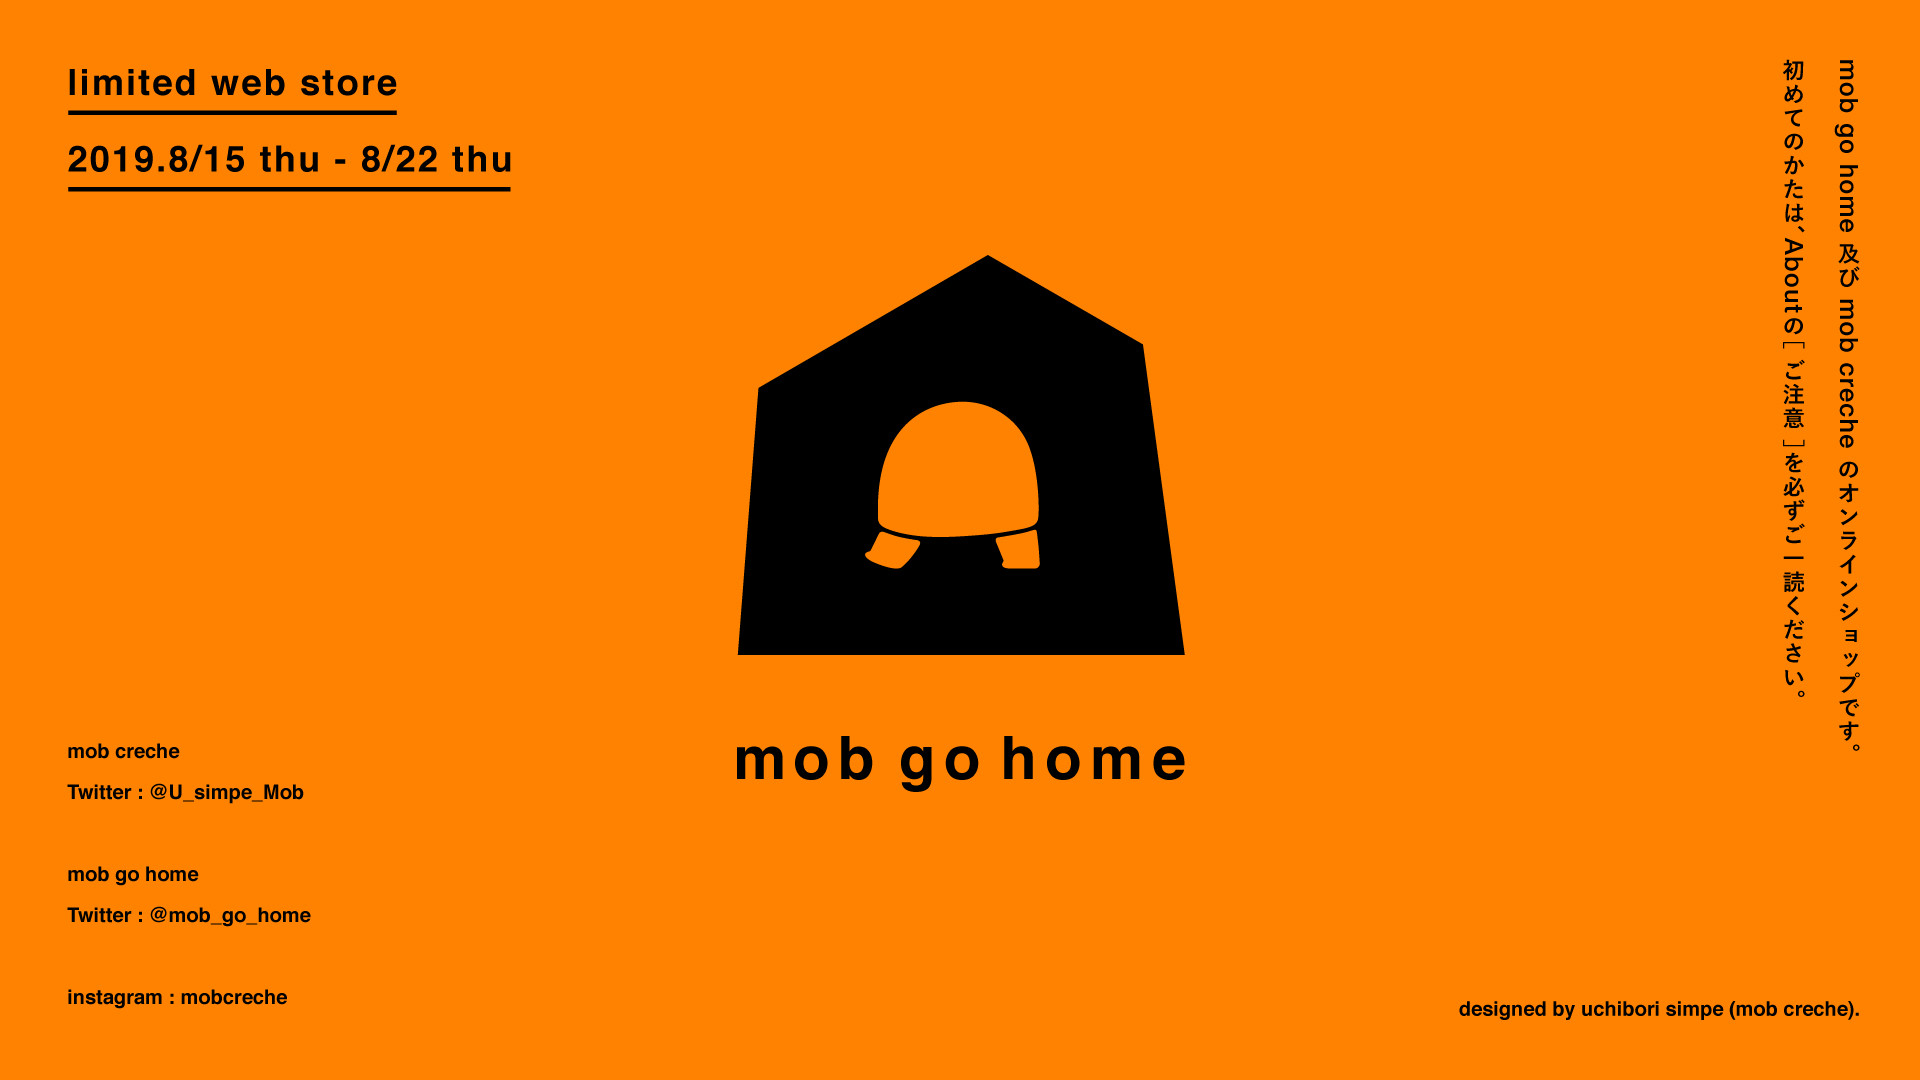 mob go home